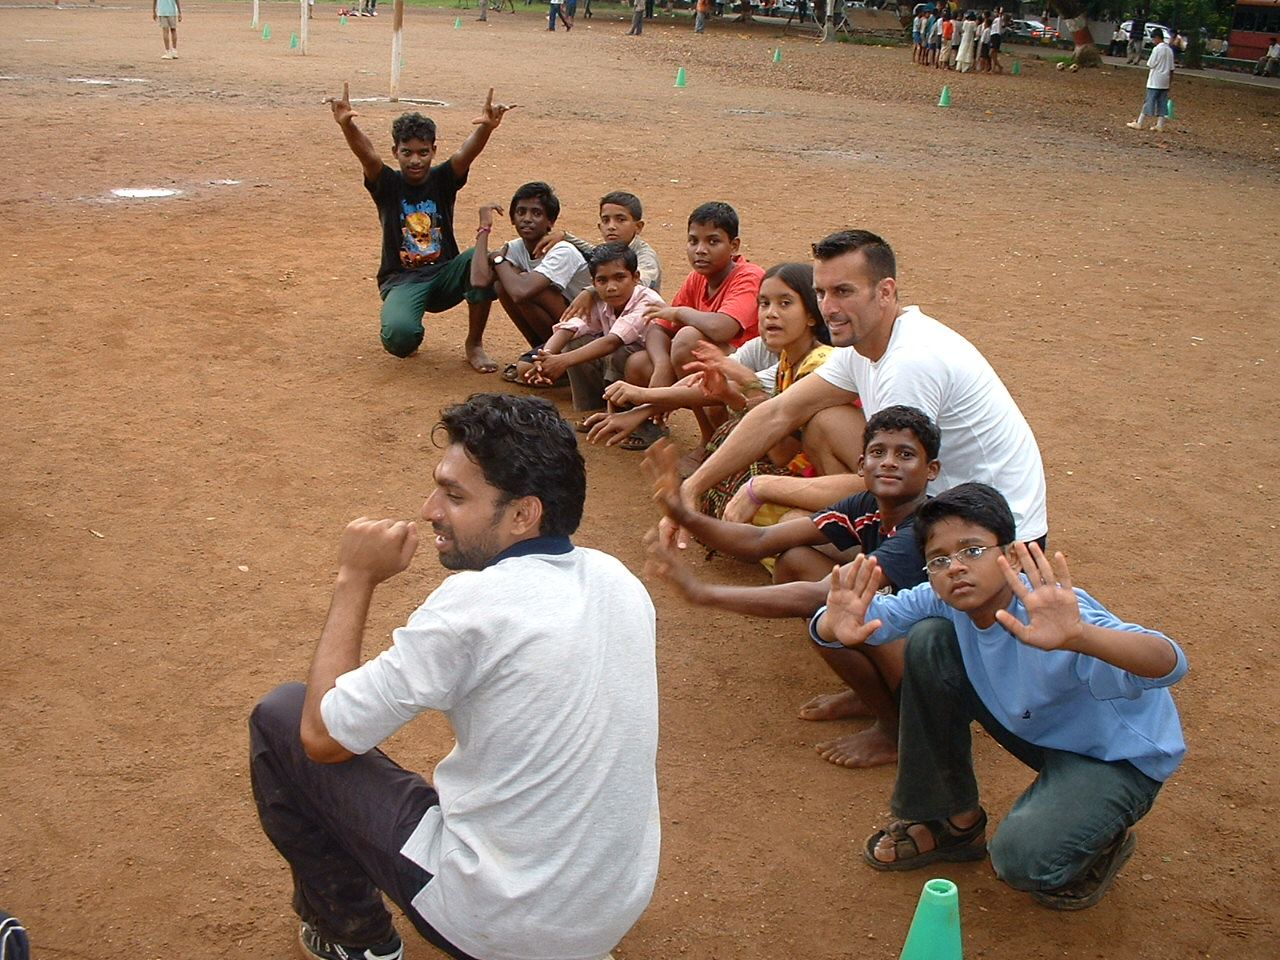 Mike Reeder India Volunteer Games